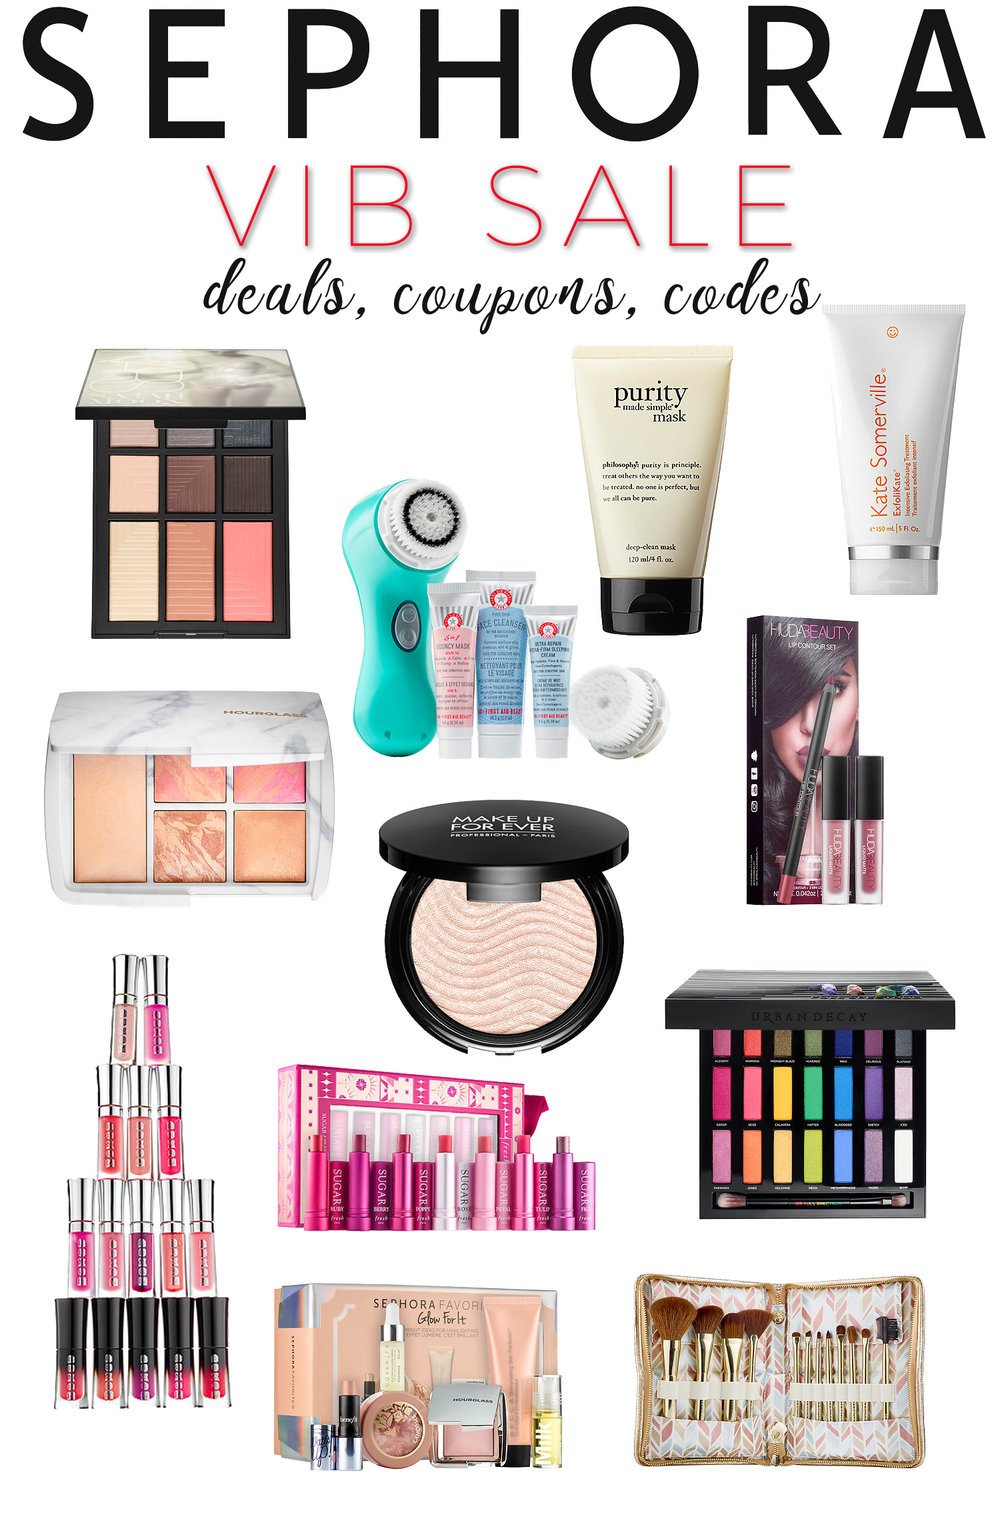 Sephora VIB Sale - Shopping Suggestions, Deals, Coupons + Codes.